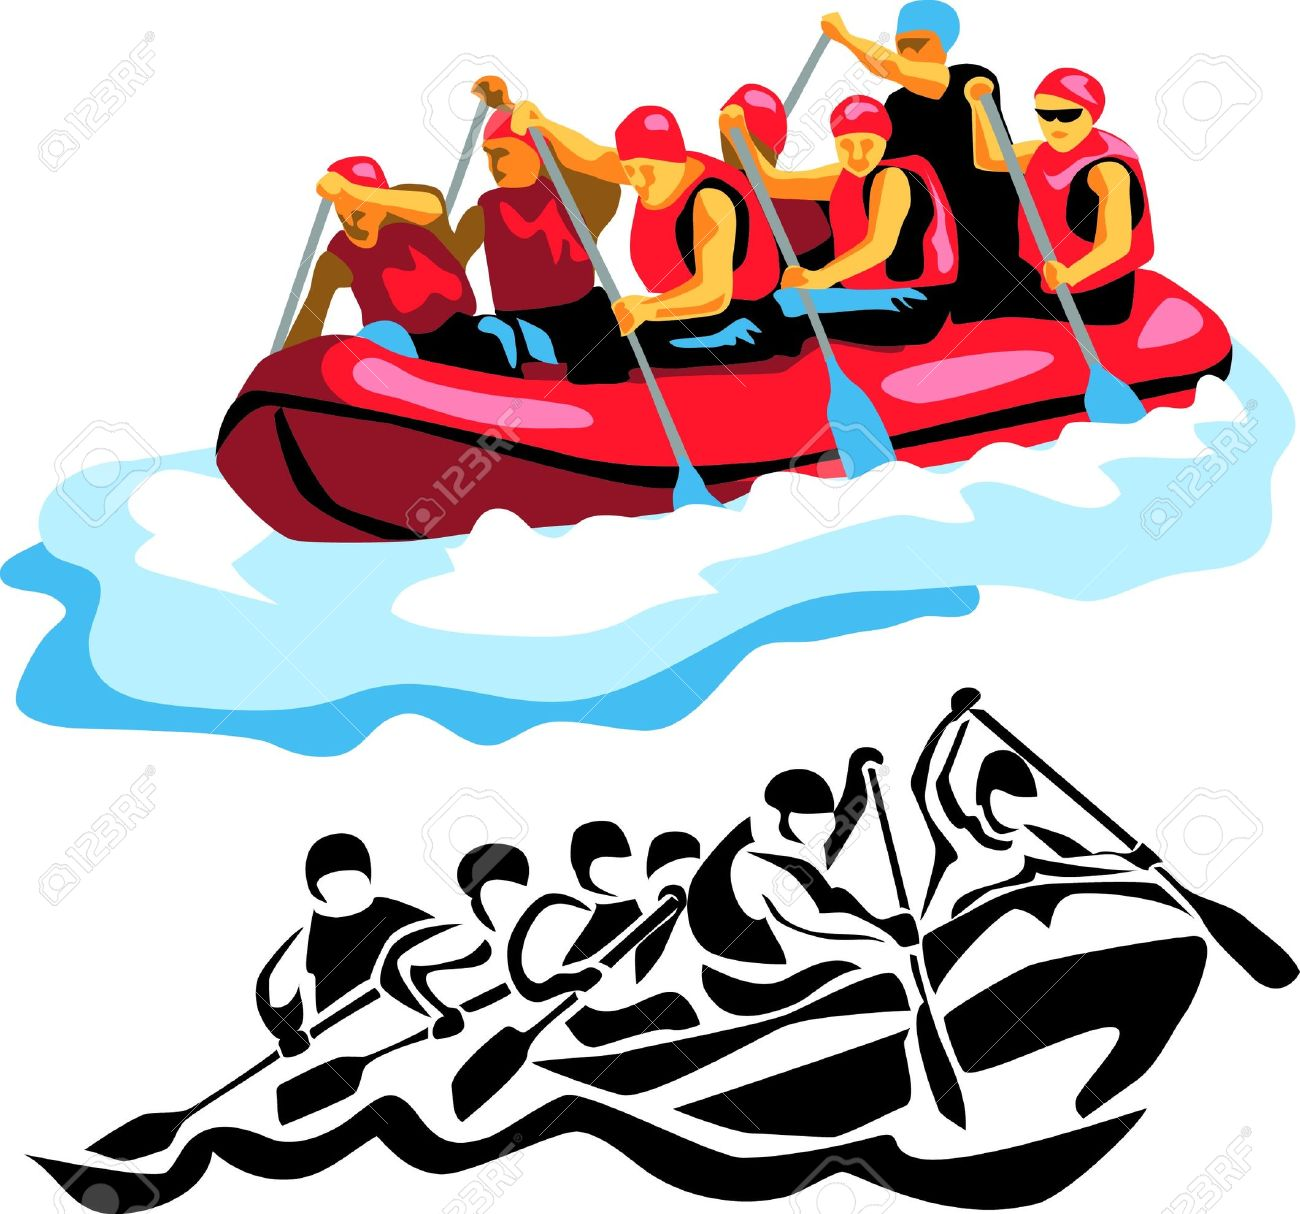 White water rafting clipart 8 » Clipart Station.